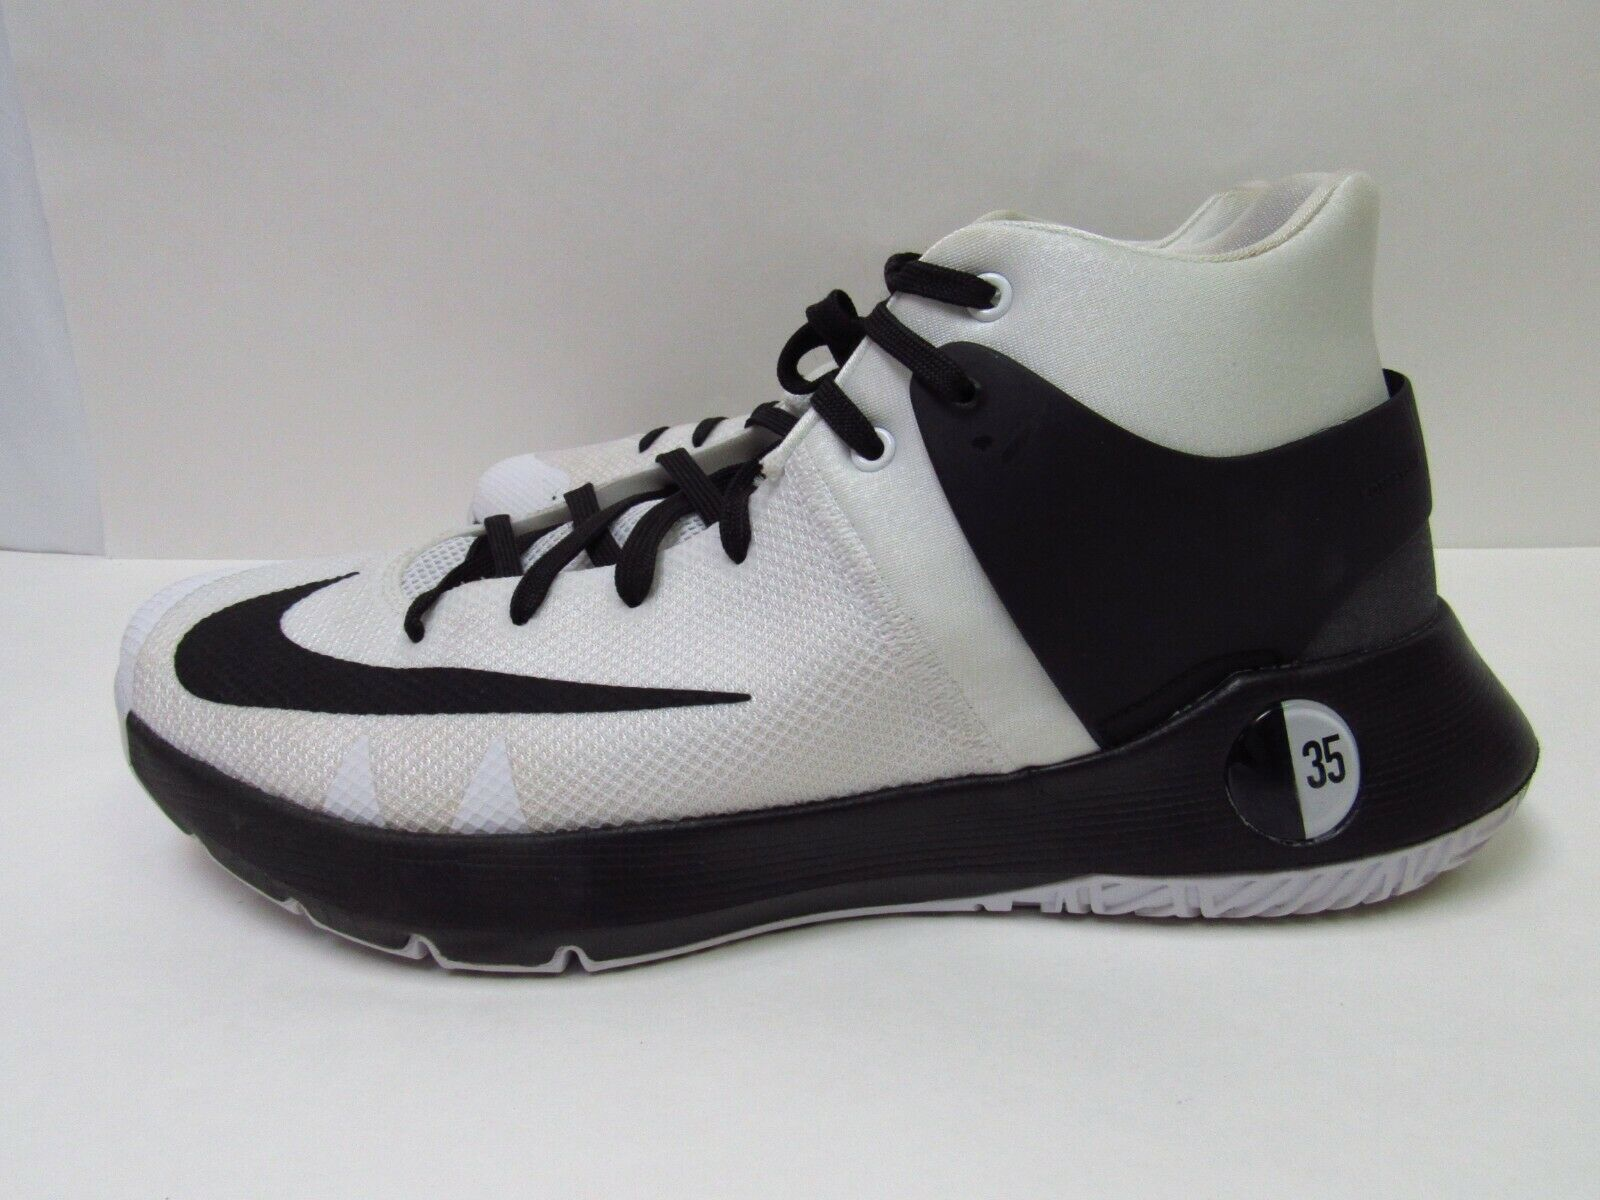 Nike KD Trey IV TB White   Black 844590-100 Mens Sneakers Size 11